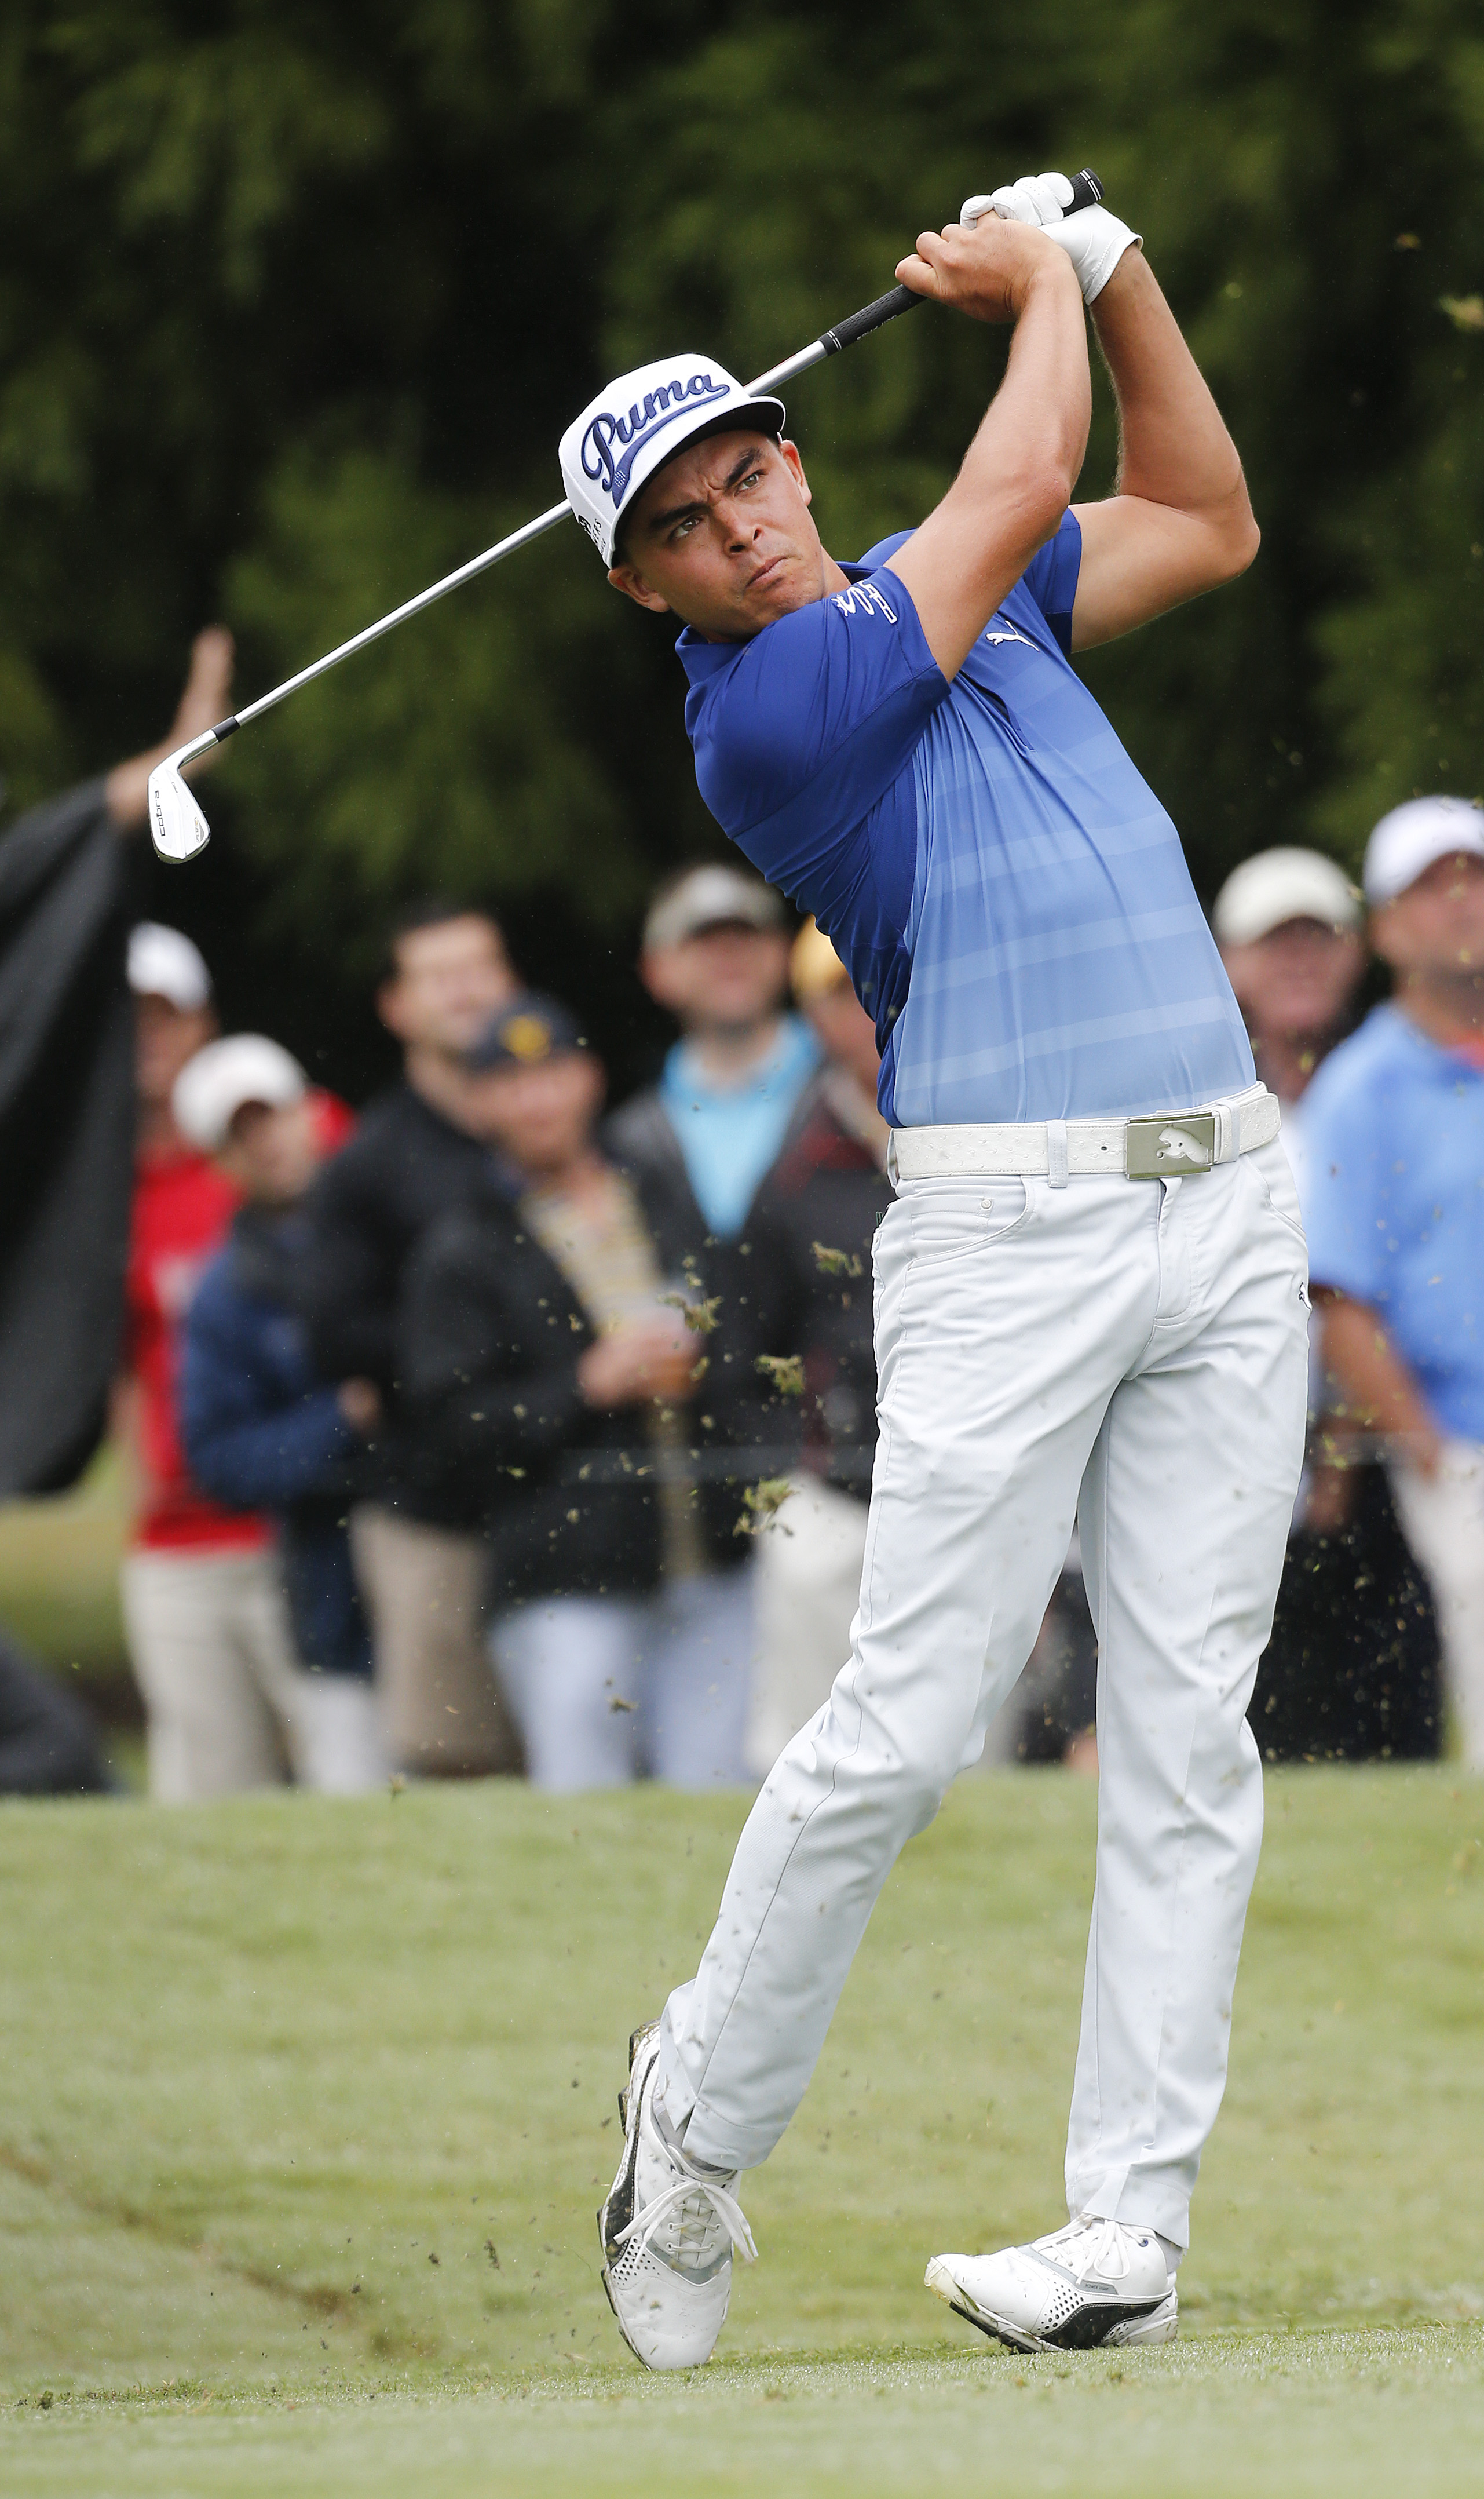 Rickie Fowler hits from the second tee during the second round of the Tour Championship golf tournament at East Lake Club Friday, Sept. 25, 2015, in Atlanta. (AP Photo/ John Bazemore)